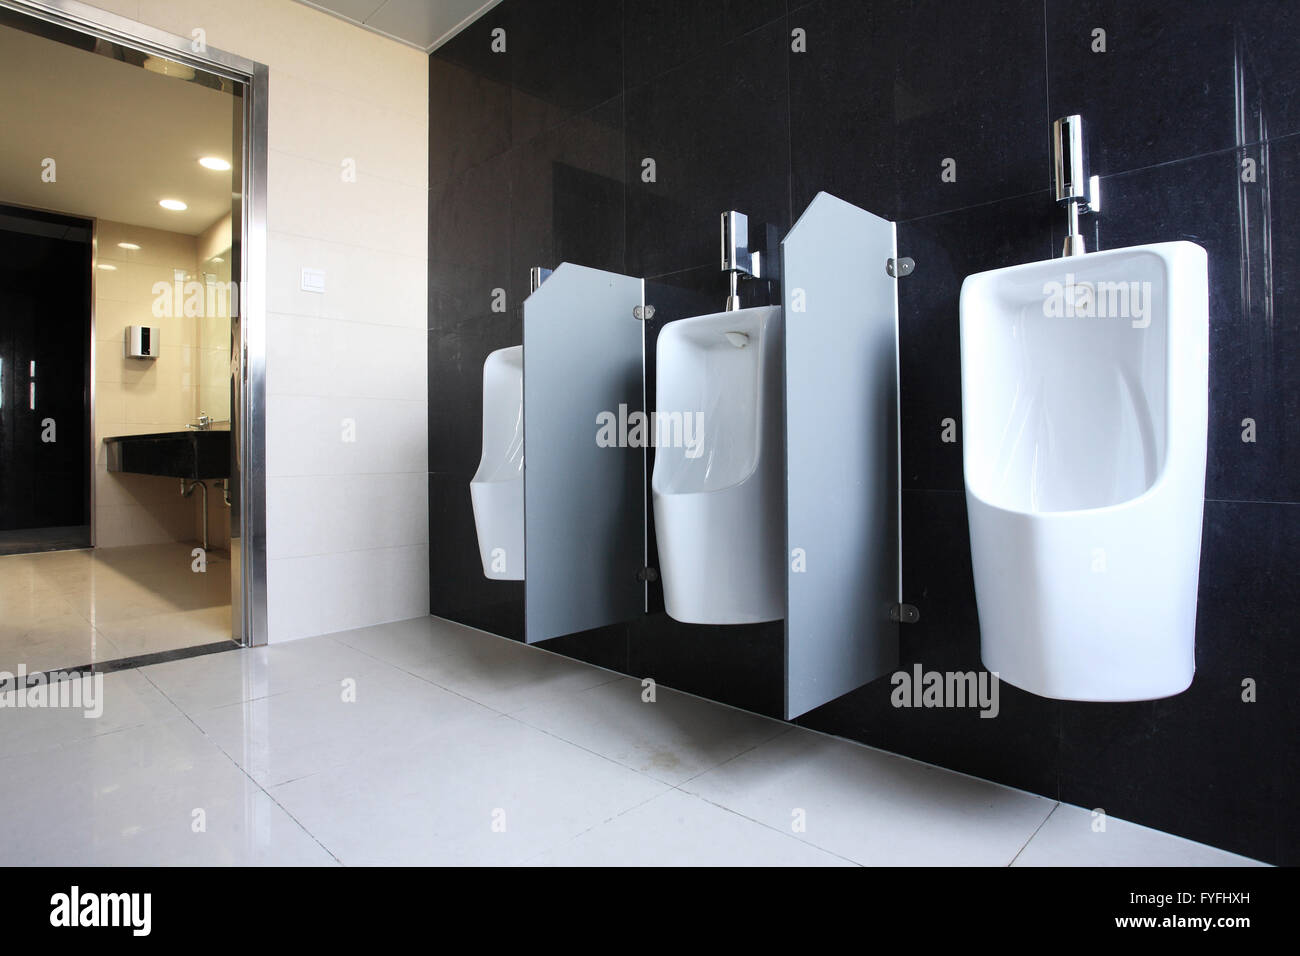 Public toilets, men's urinal - Stock Image